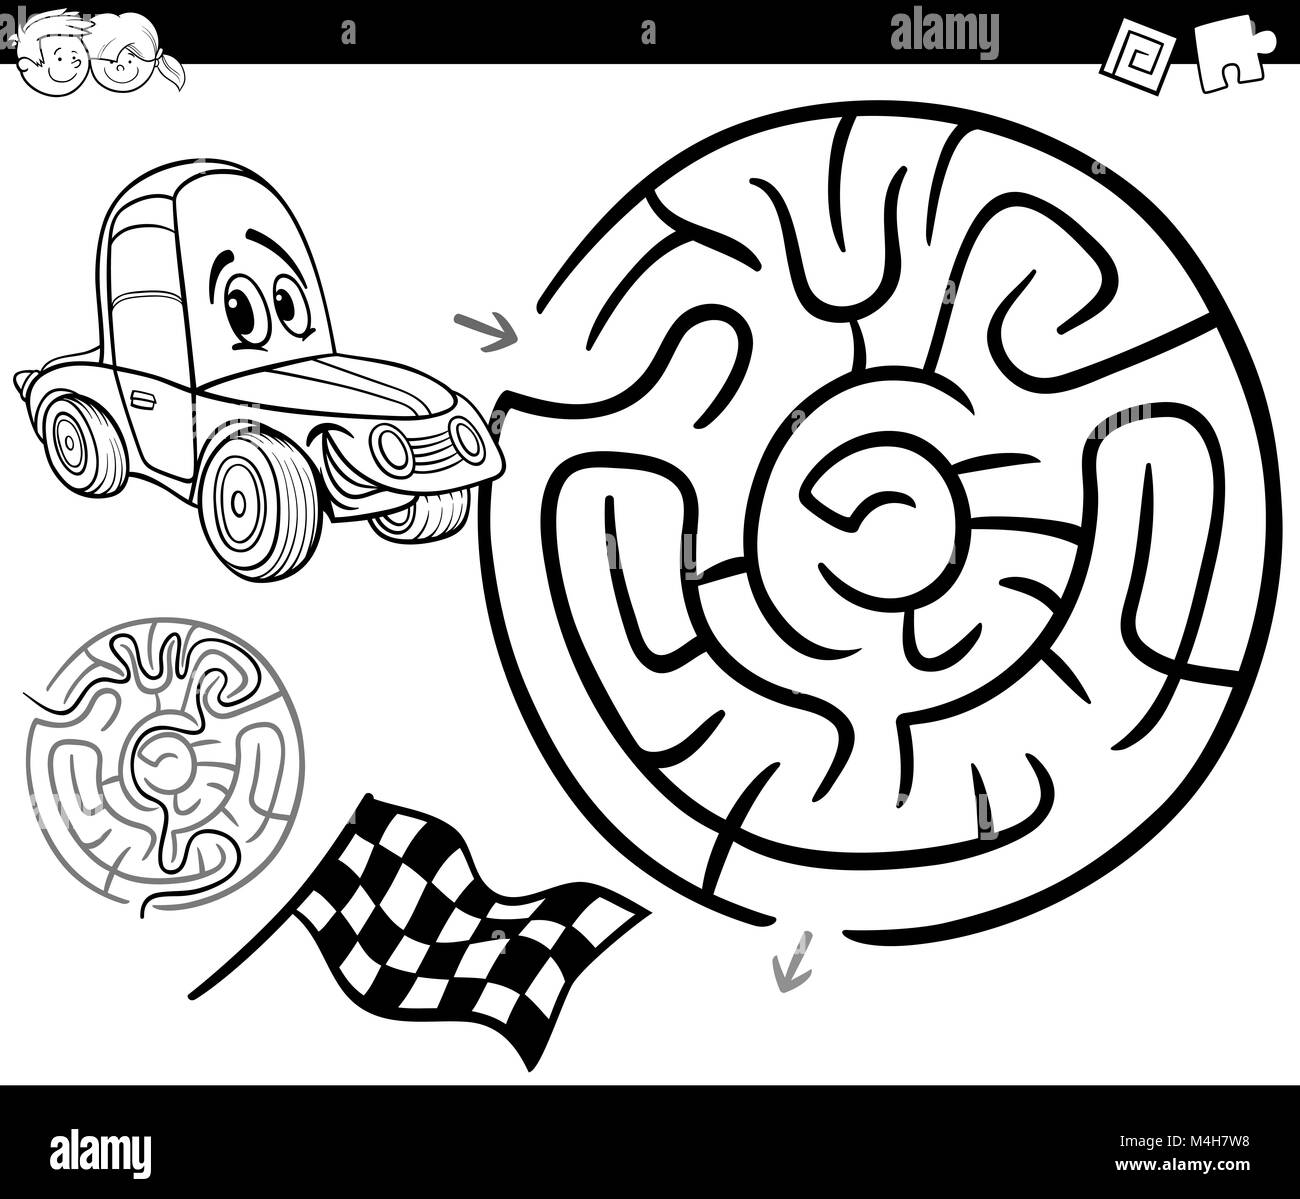 fun car black and white stock photos images alamy Citroen Classic Cars maze with car coloring page stock image